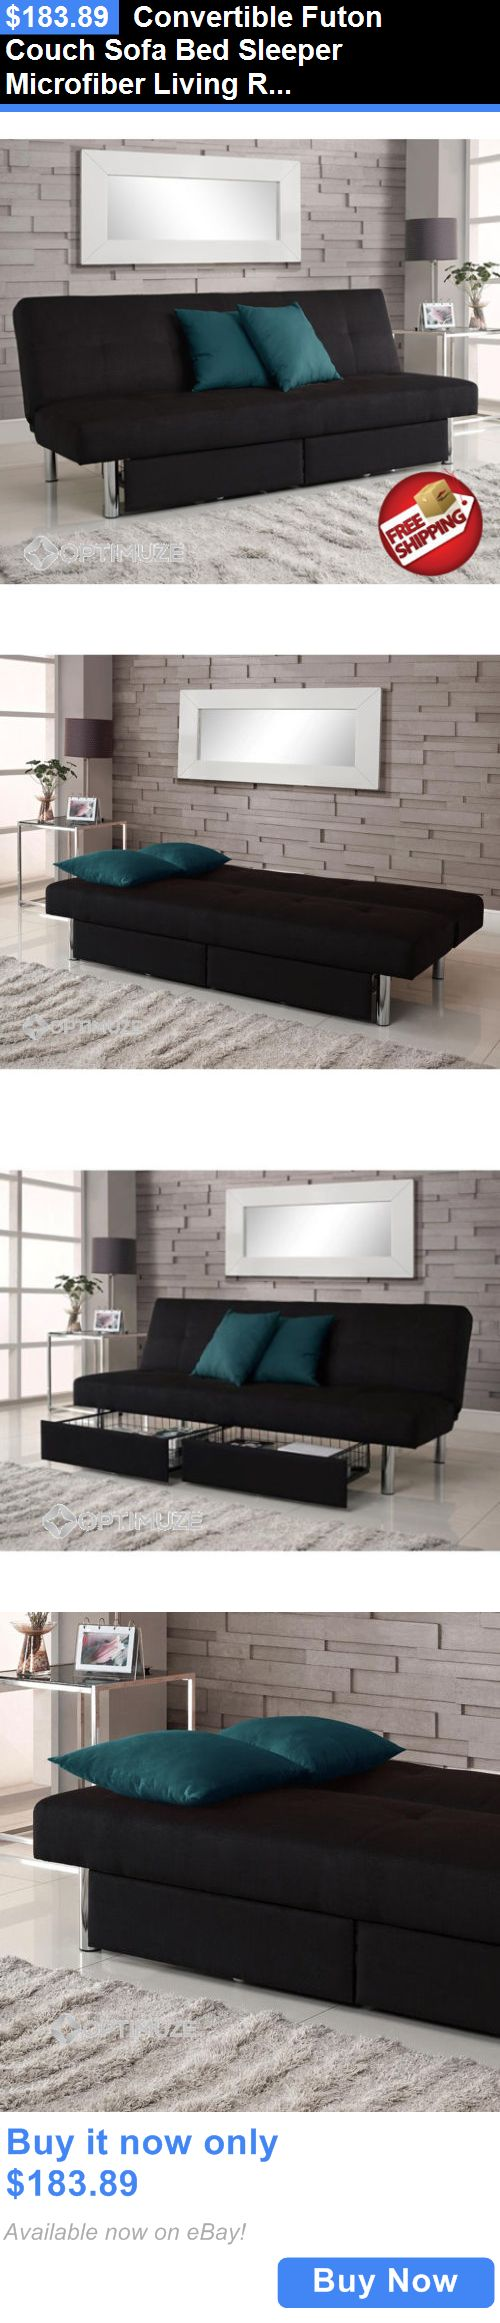 furniture: Convertible Futon Couch Sofa Bed Sleeper Microfiber Living Room Storage Black BUY IT NOW ONLY: $183.89